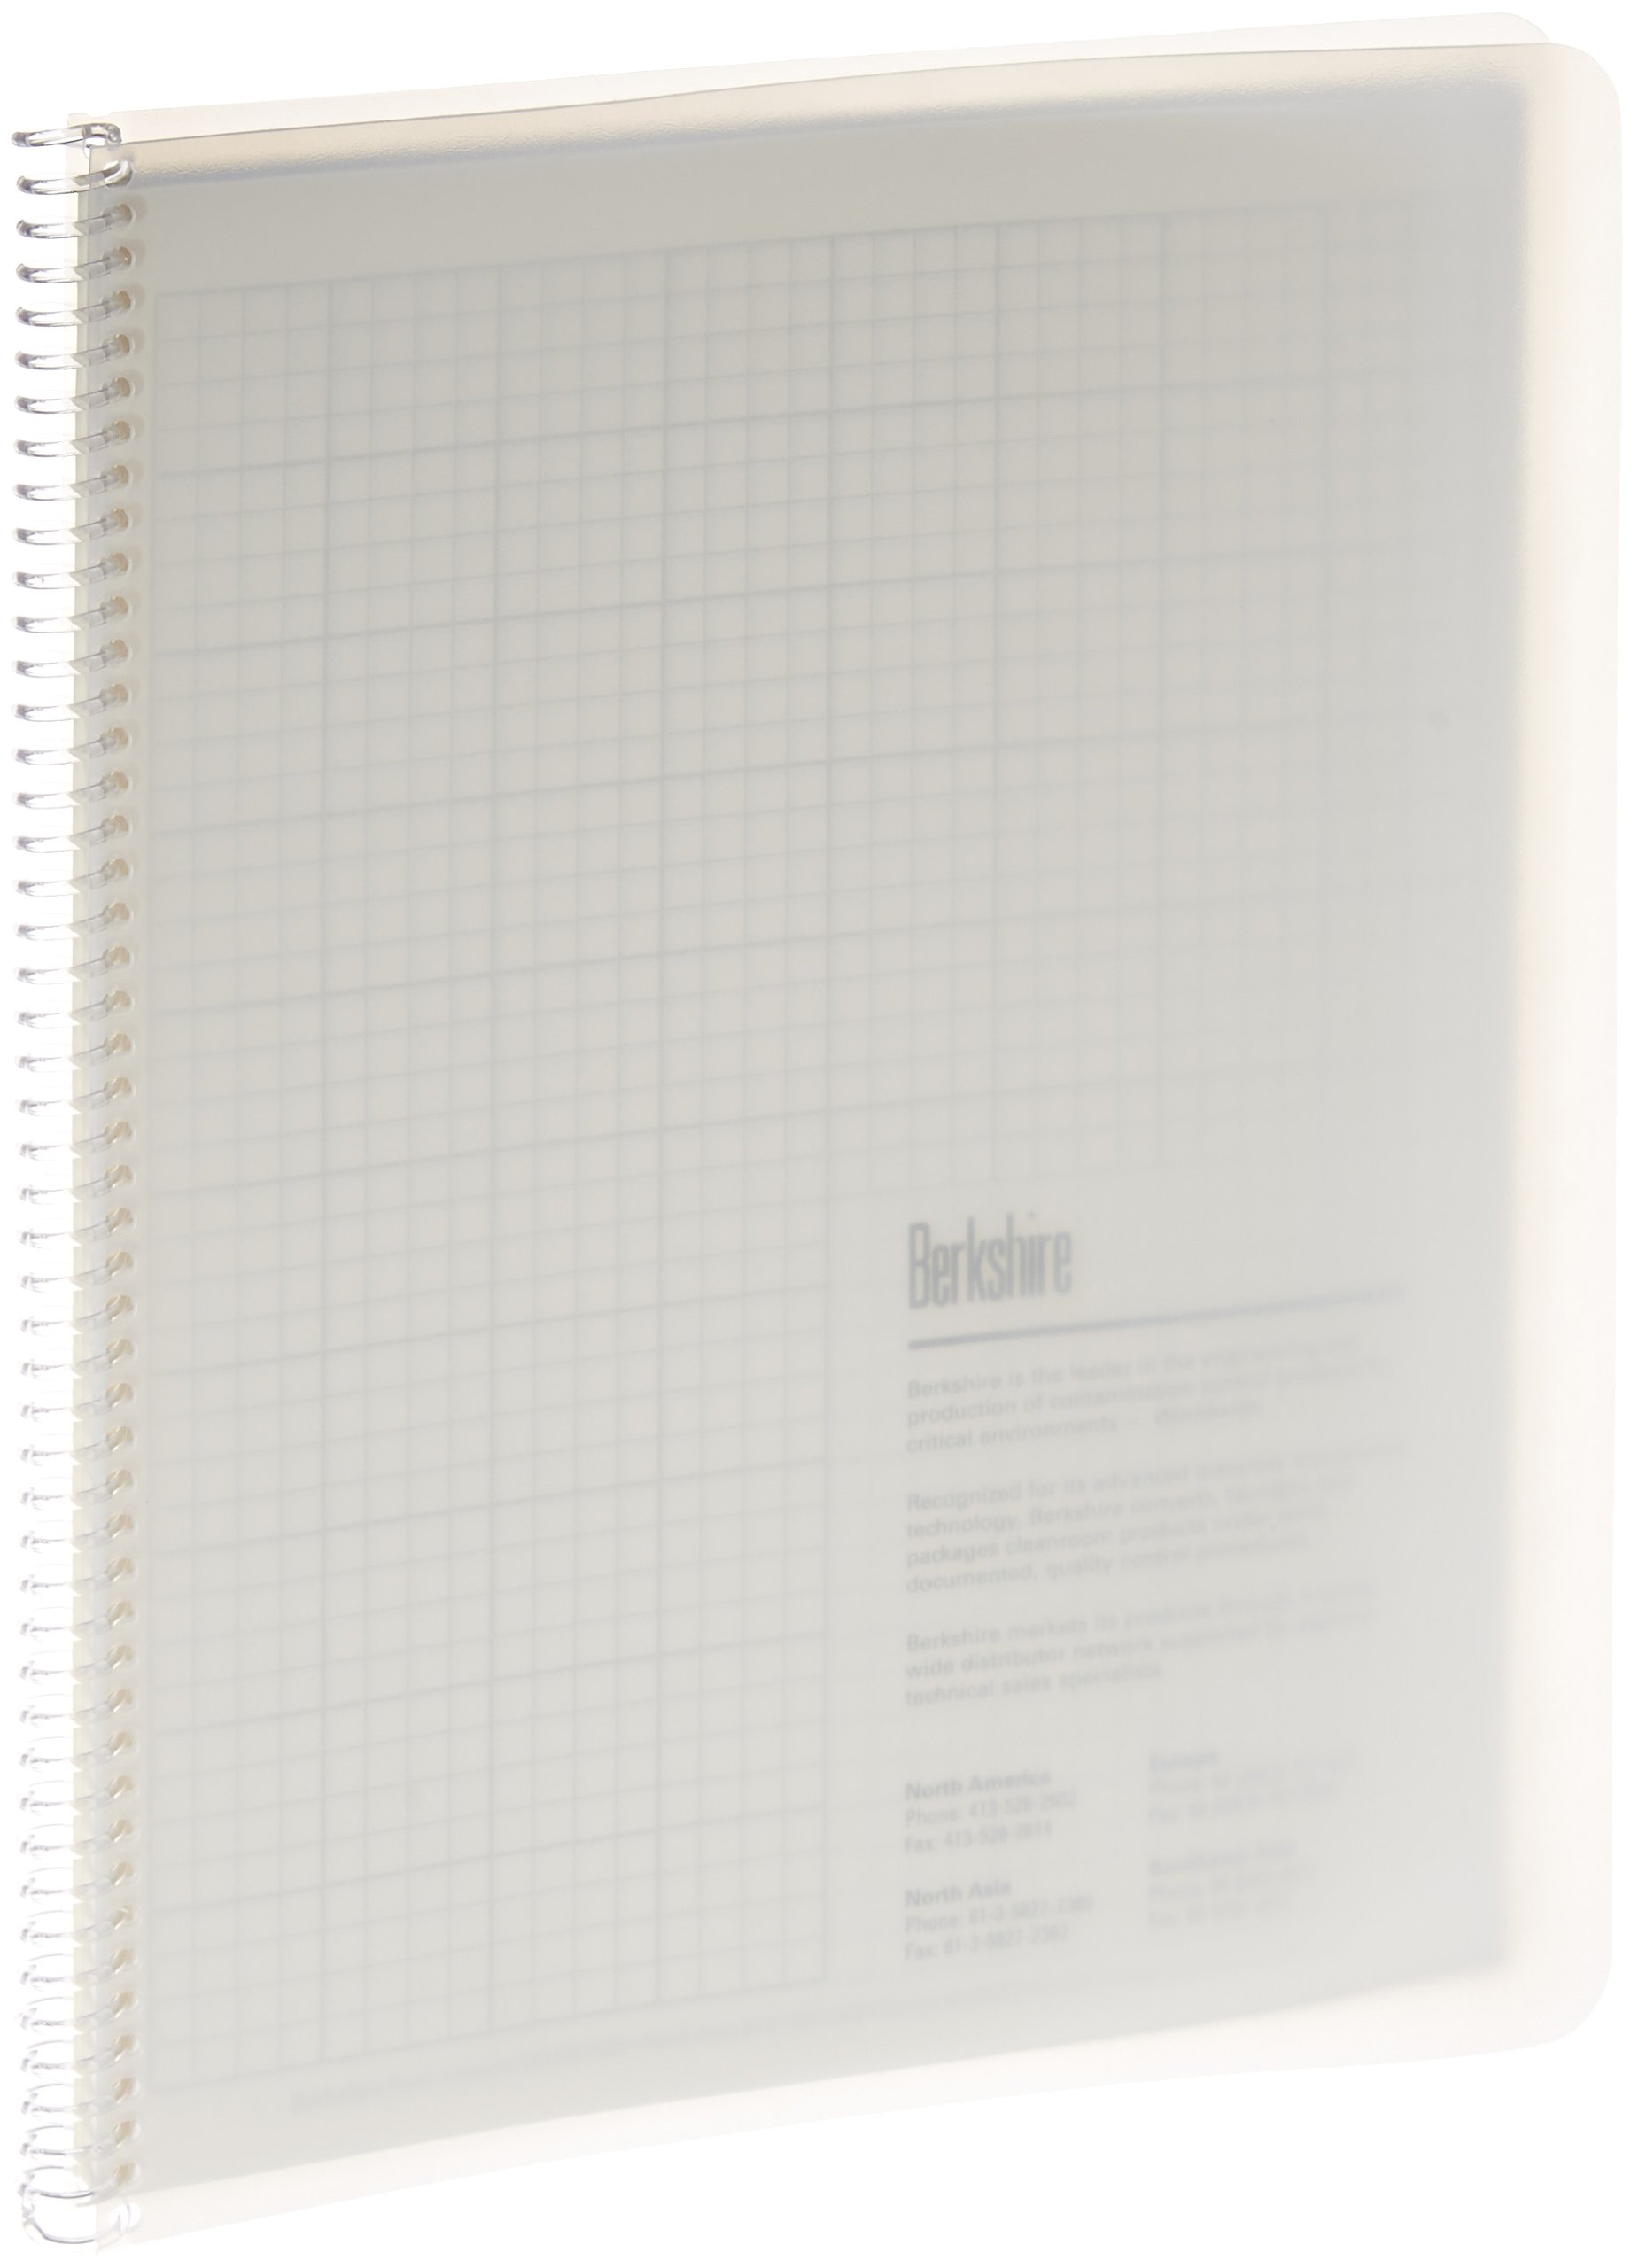 Berkshire BCR 1/4'' Grid Spiral Notebook, 8-1/2'' x 11'' (Case of 10 Packs) by Berkshire